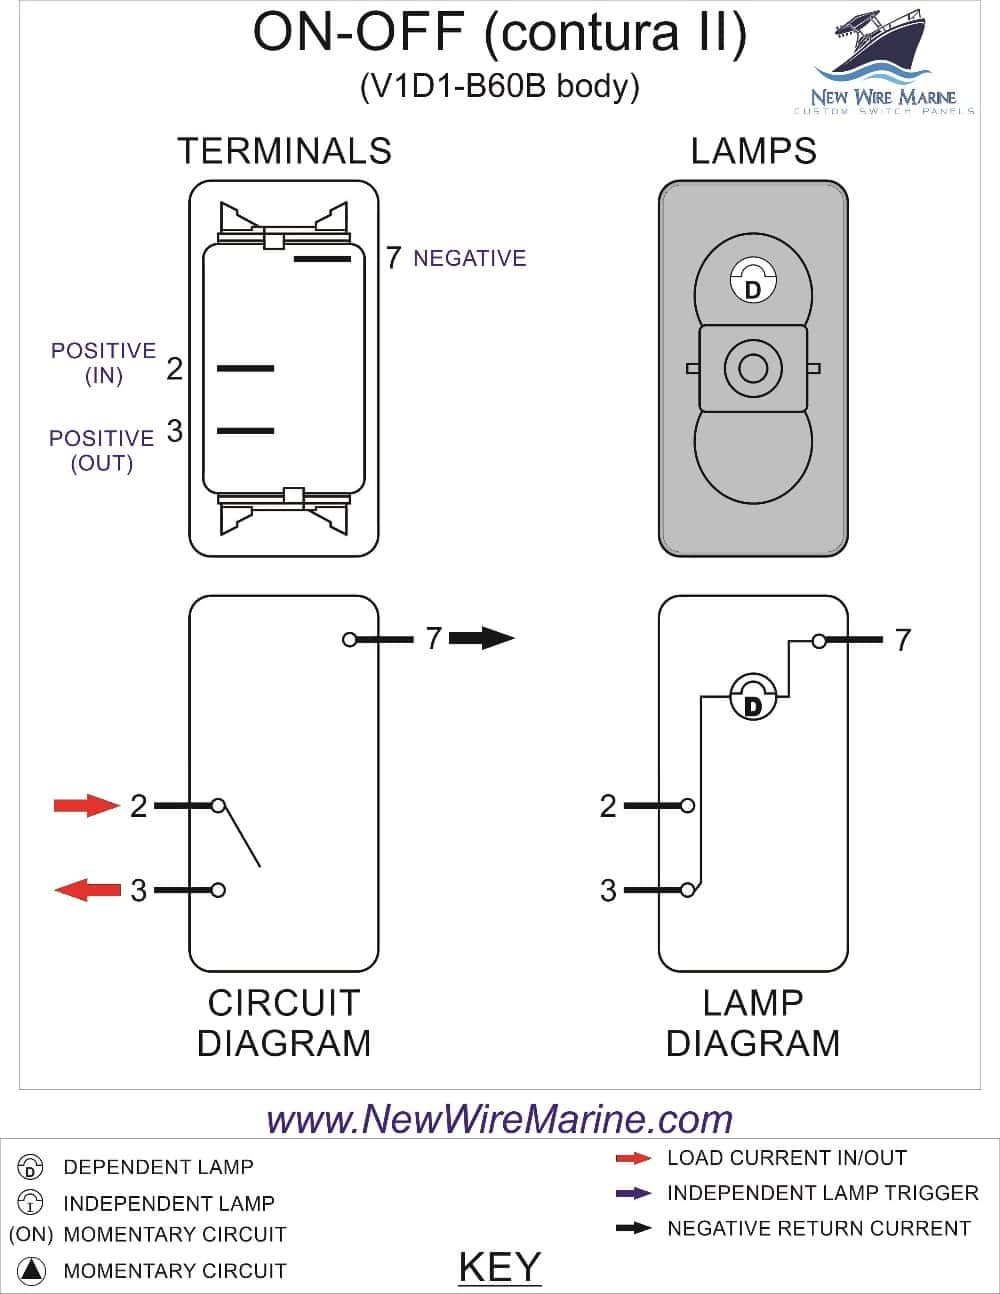 spdt toggle switch wiring diagram Download-Carling Toggle Switch Wiring Diagram Fitfathers Me Beautiful 11-n